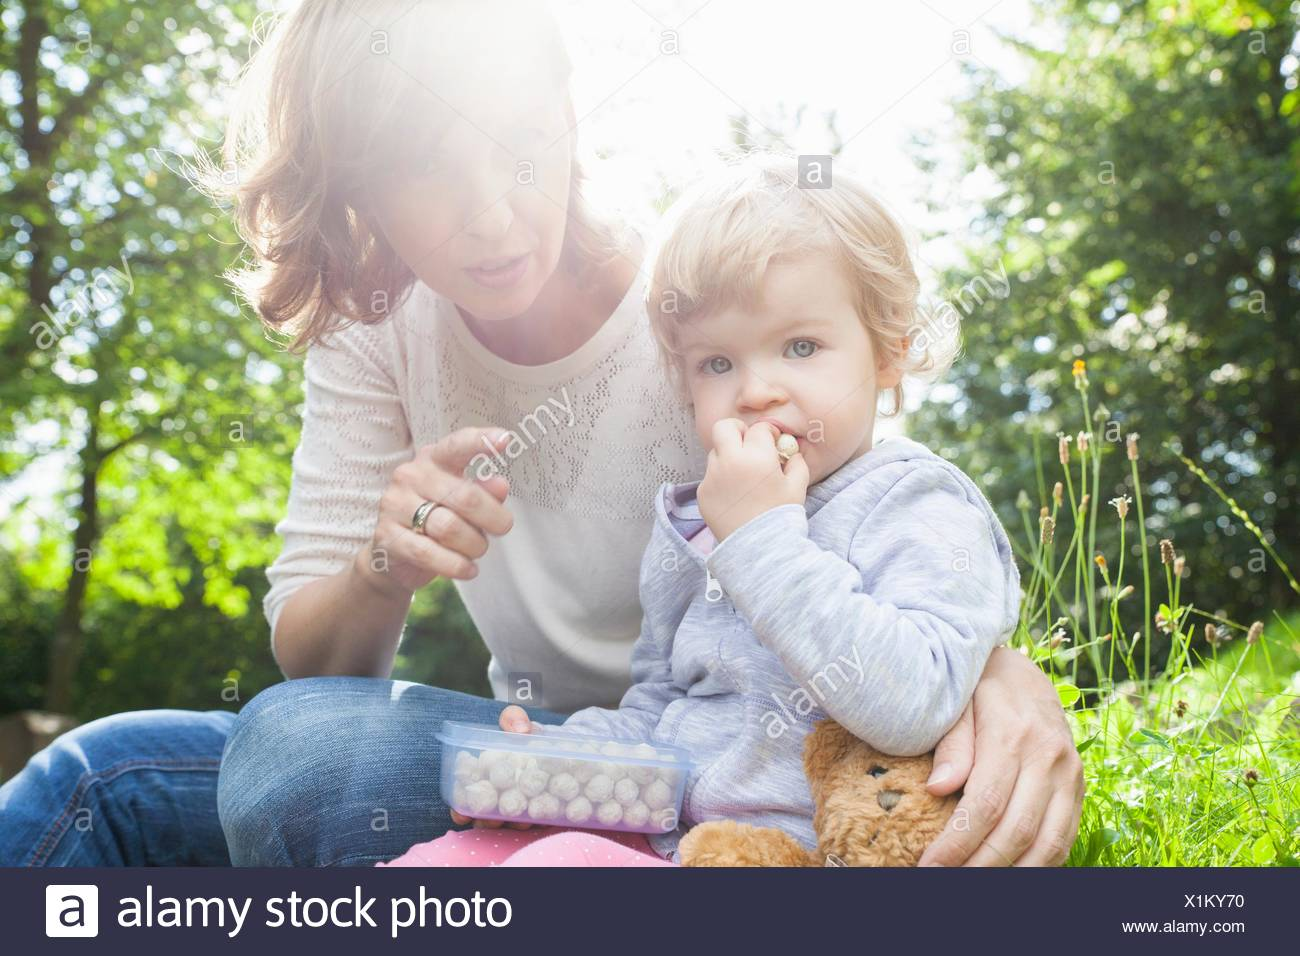 Mother and female toddler eating sweets in park - Stock Image